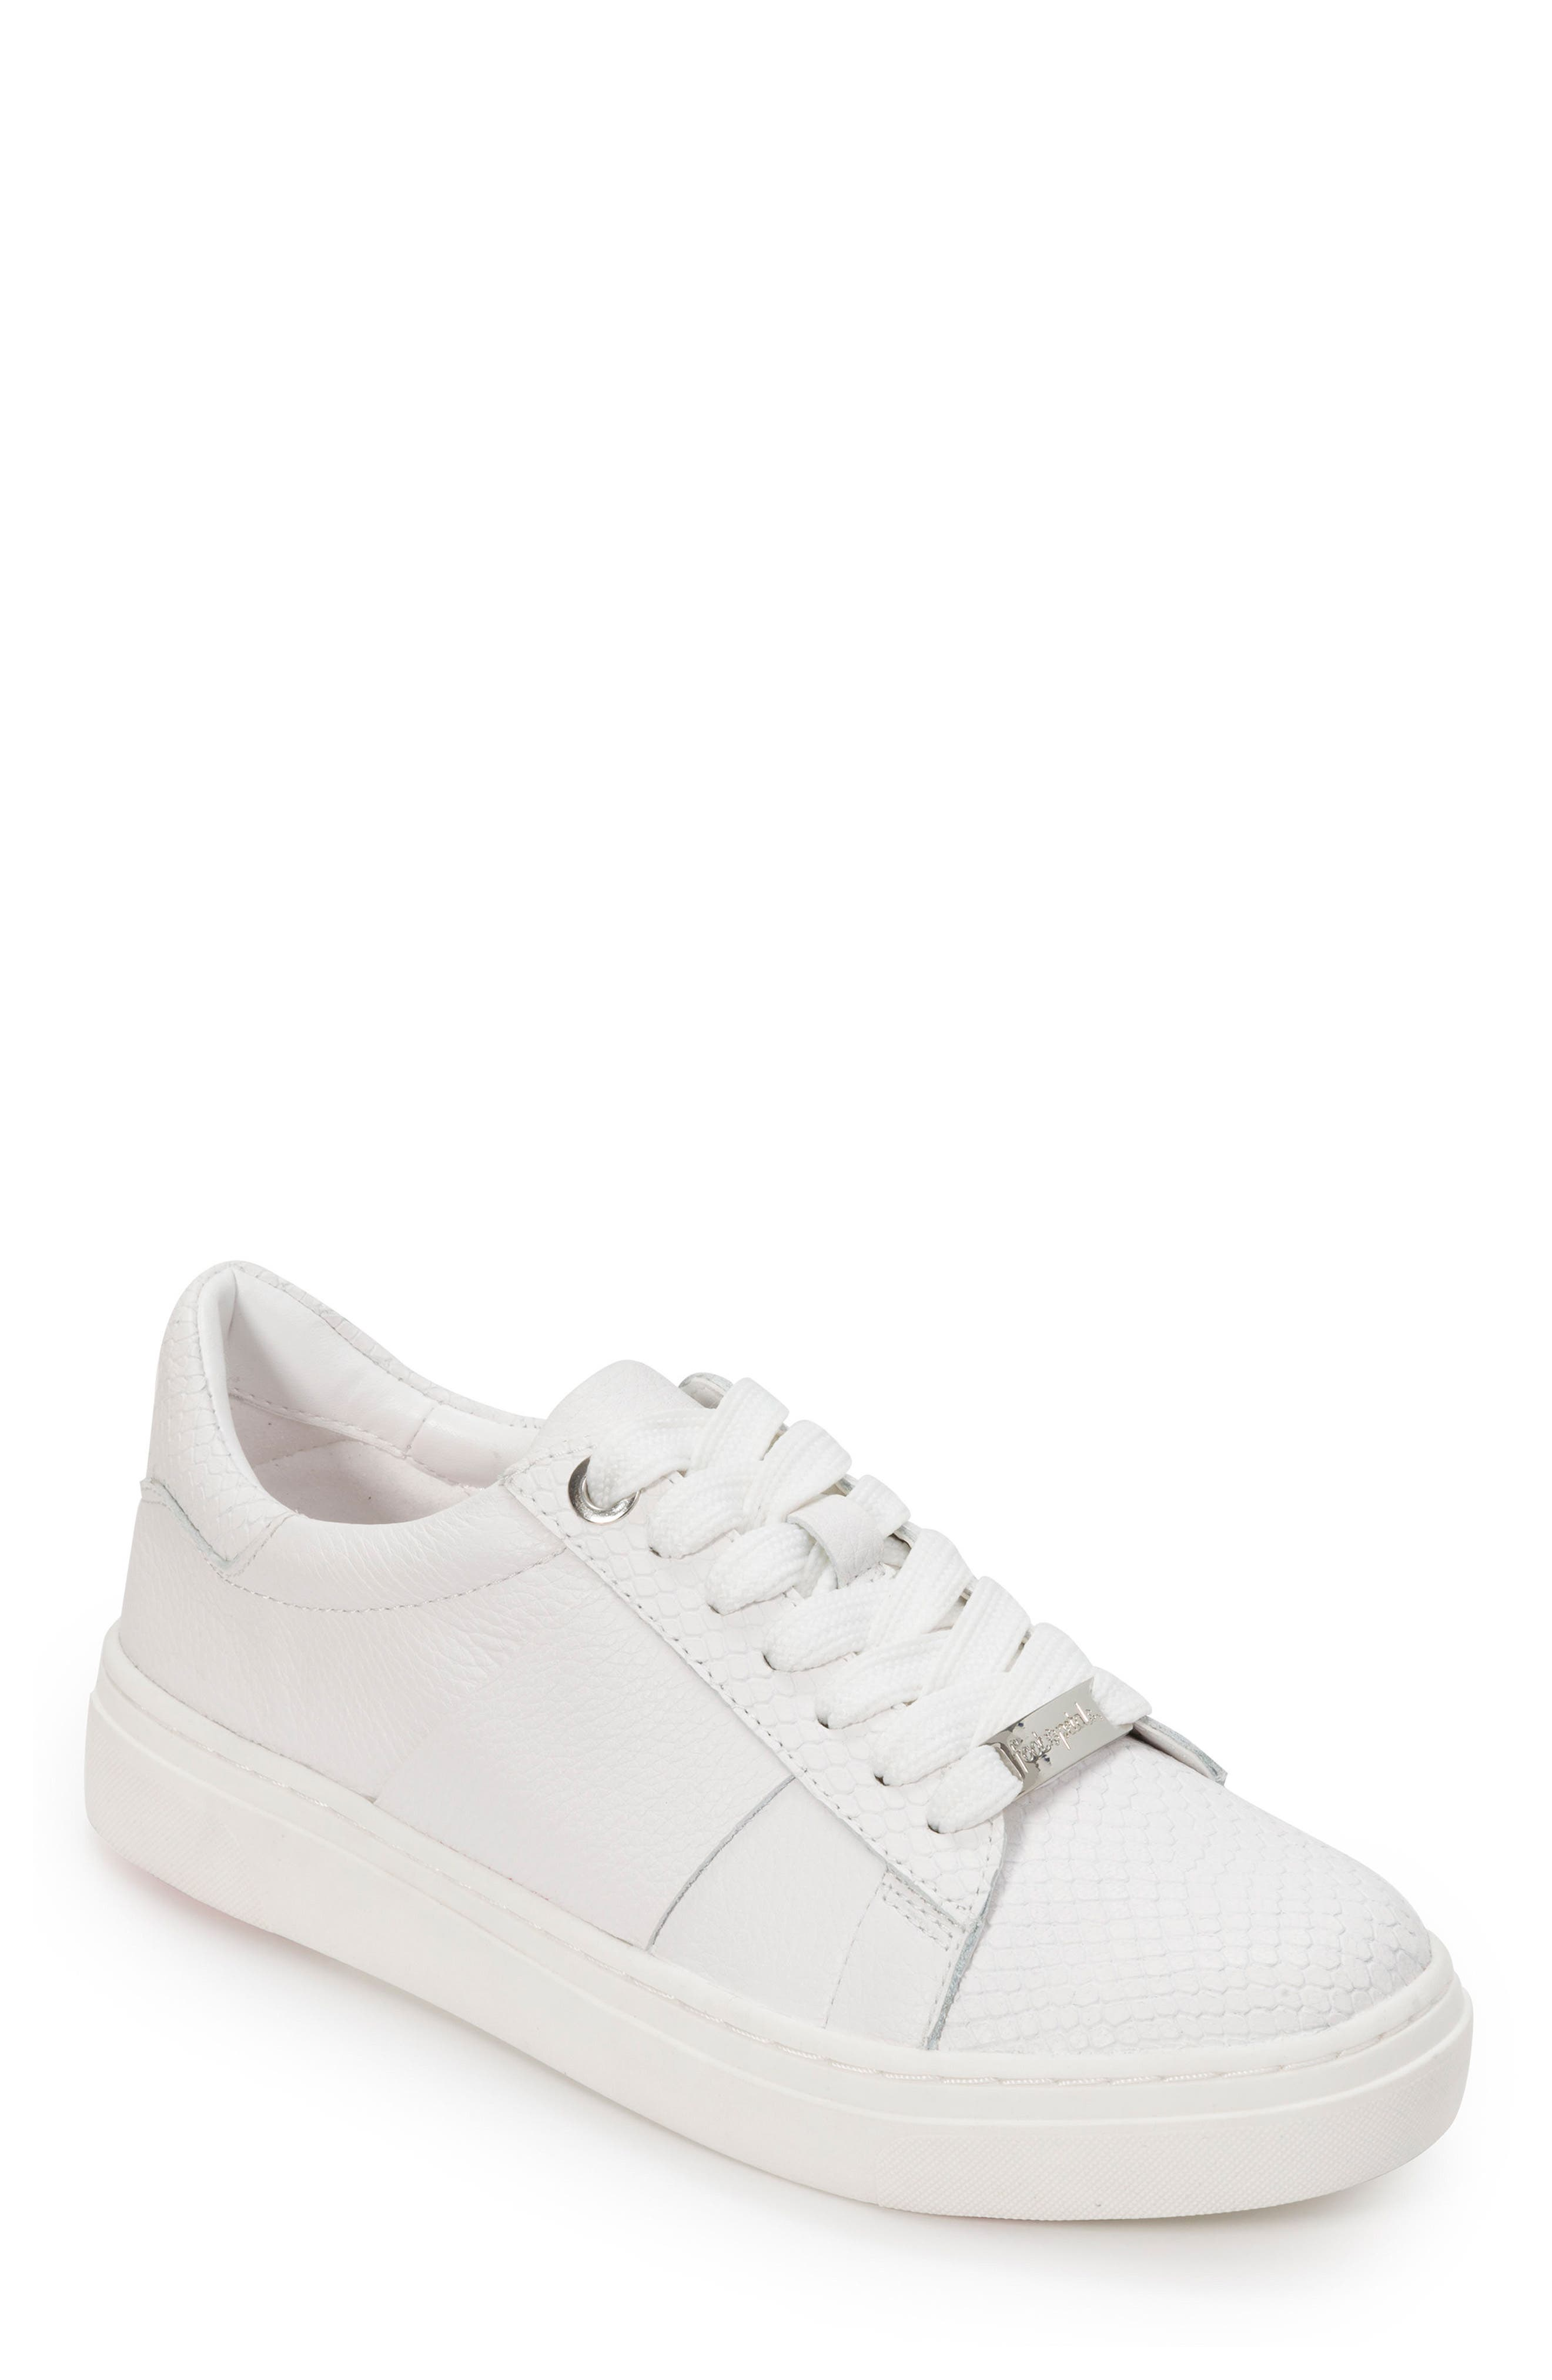 FOOT PETALS Fallon Sneaker in White Leather